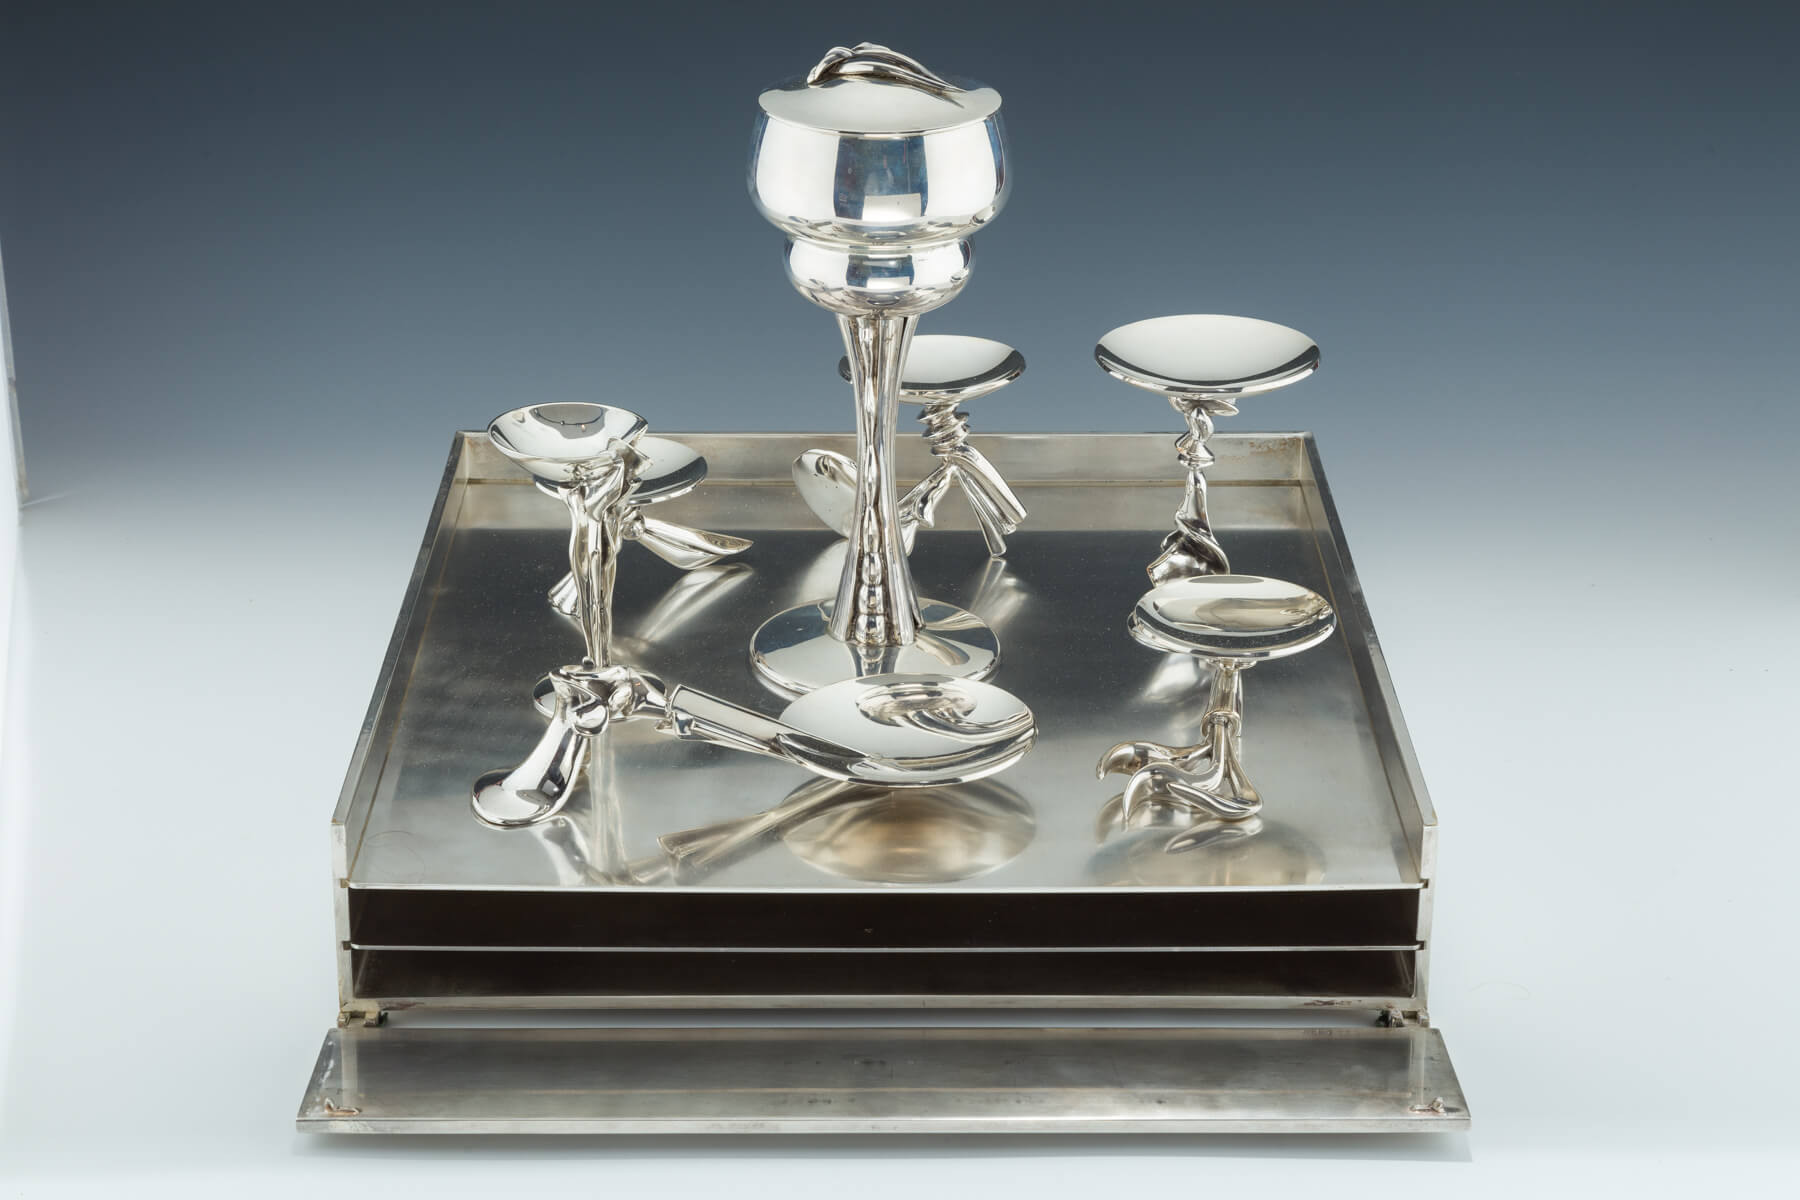 177. A Large Sterling and Marble Seder Set by Richard Fishman